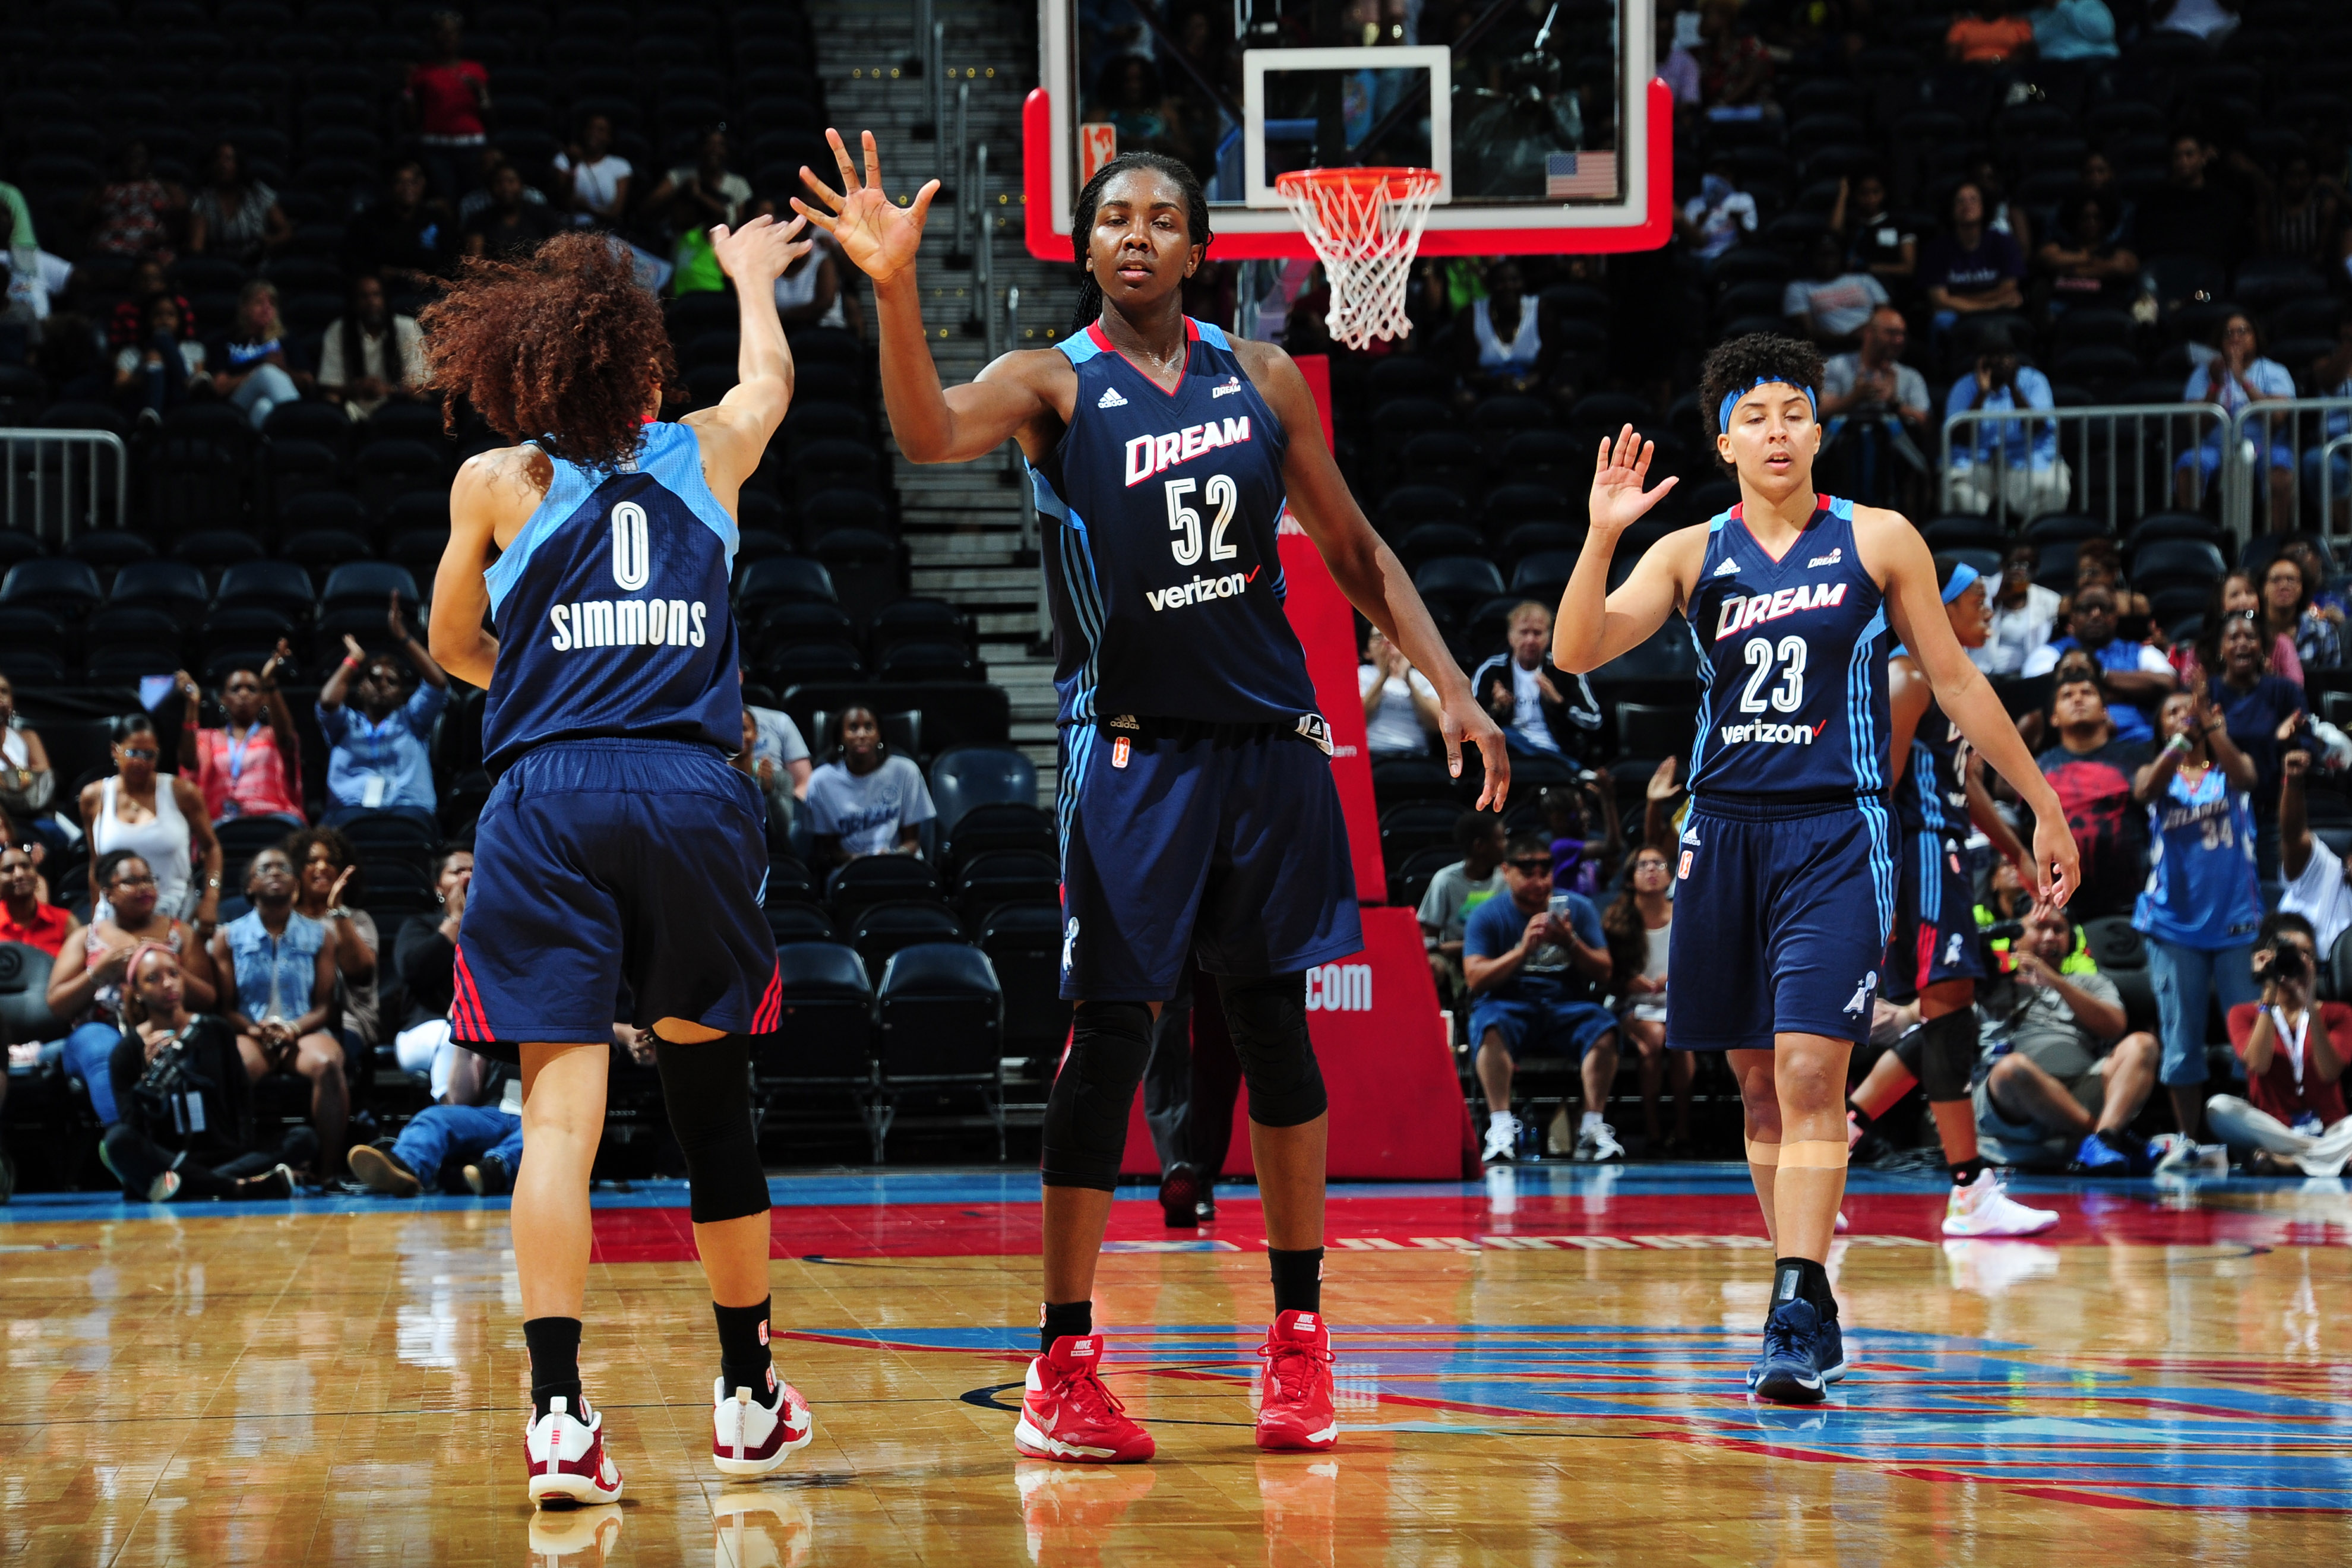 ATLANTA, GA - JUNE 12: Meighan Simmons #0 high fives teammate Elizabeth Williams #52 of the Atlanta Dream after a play against the Connecticut Sun during the game on June 12, 2016 at Philips Arena in Atlanta, Georgia. NOTE TO USER: User expressly acknowledges and agrees that, by downloading and or using this Photograph, user is consenting to the terms and conditions of the Getty Images License Agreement. Mandatory Copyright Notice: Copyright 2016 NBAE (Photo by Scott Cunningham/NBAE via Getty Images)